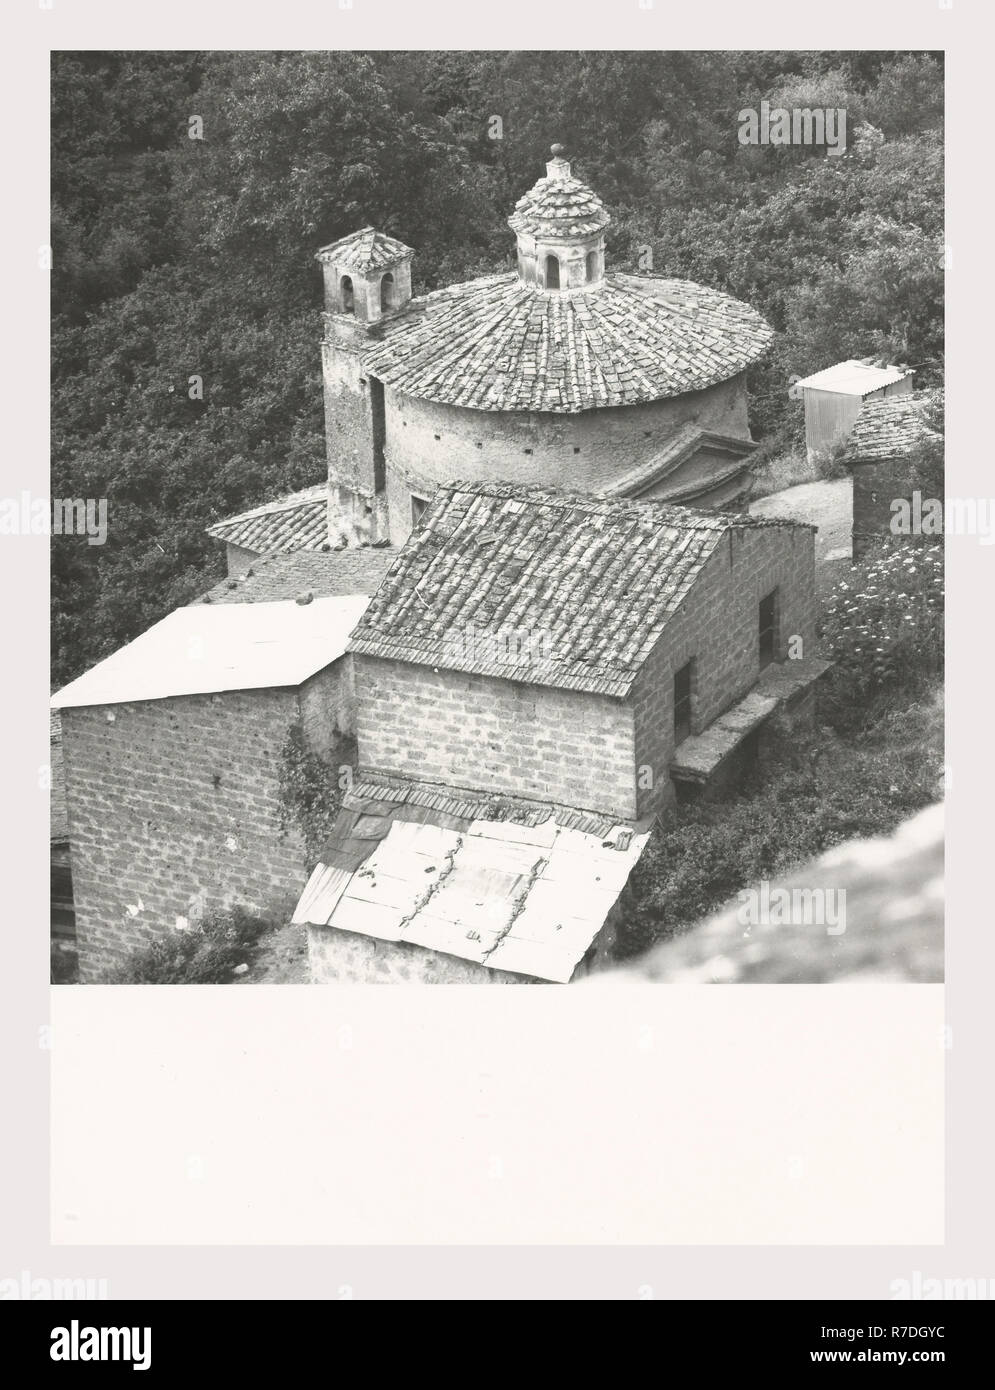 Lazio Viterbo Vignanello S. Maria delle Lacrime, this is my Italy, the italian country of visual history, Exterior views of Romanesque church apparently located outside town Stock Photo